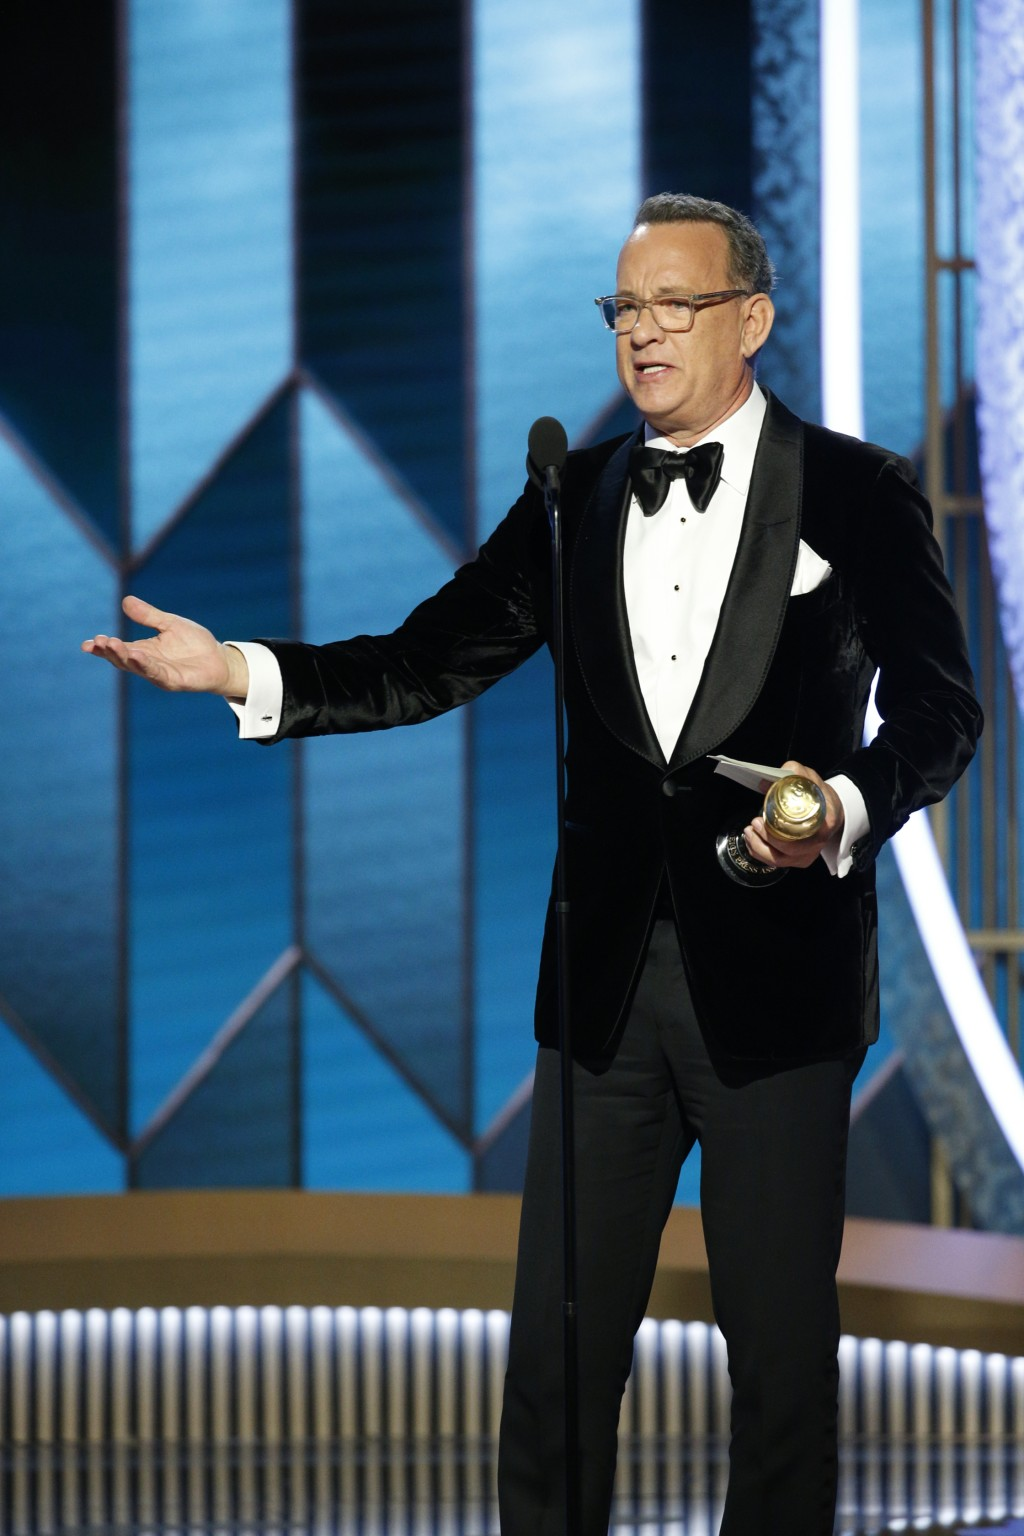 This image released by NBC shows Tom Hanks accepting the Cecil B. DeMille Award at the 77th Annual Golden Globe Awards at the Beverly Hilton Hotel in ...